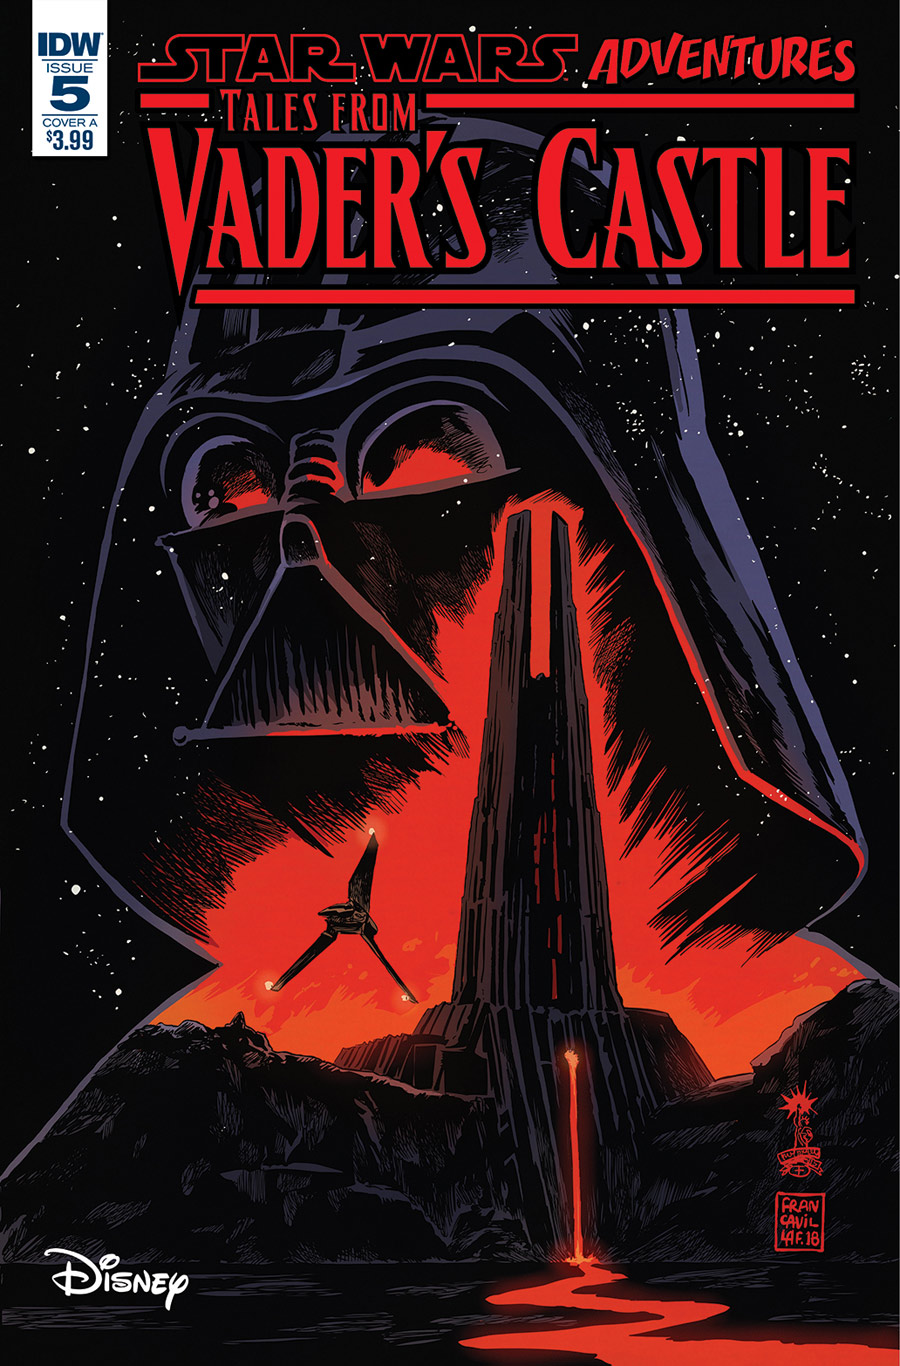 Tales from Vader's Castle #5 cover.